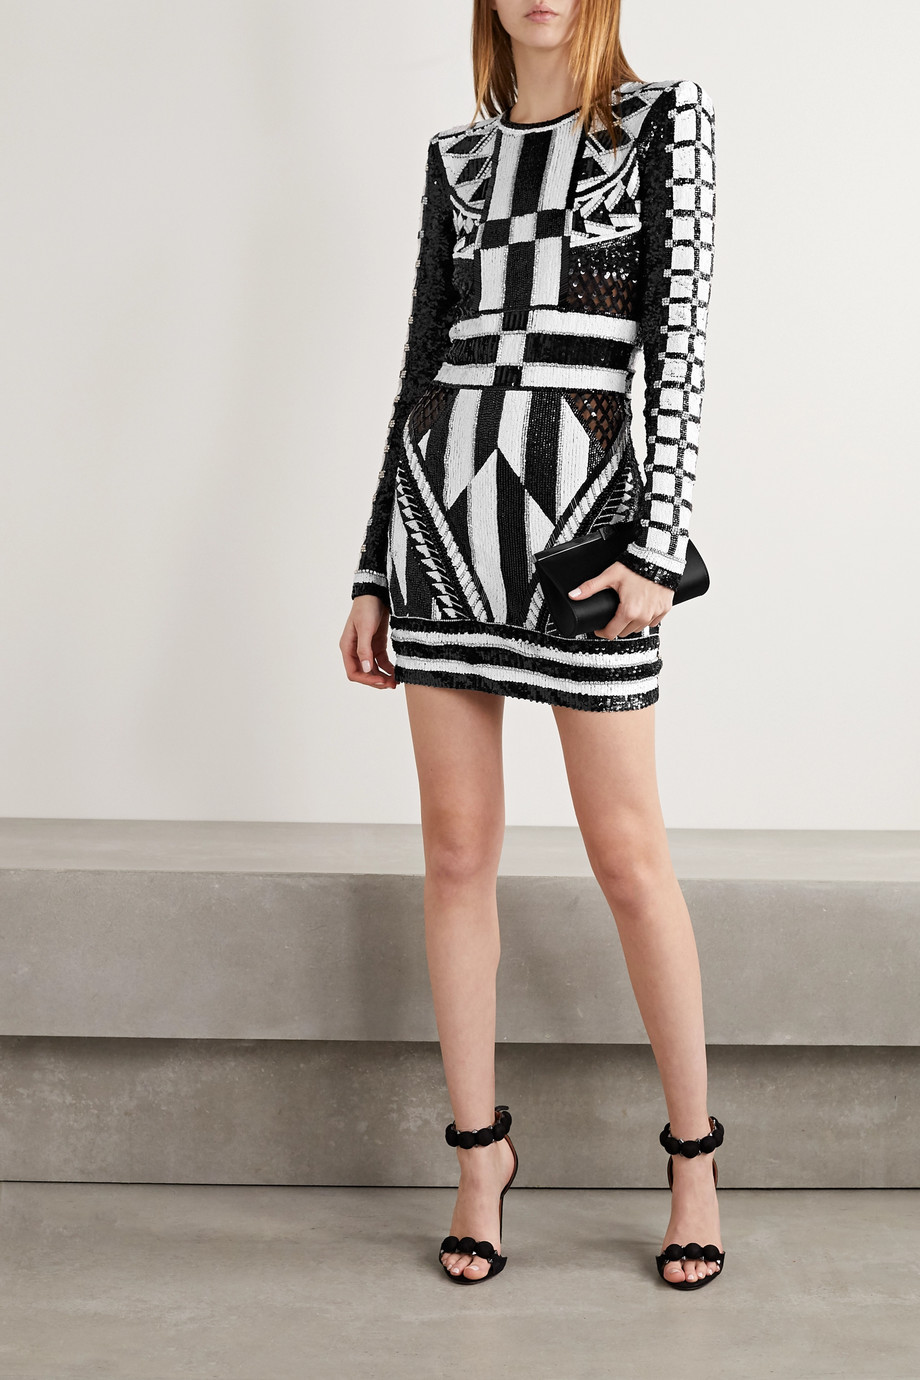 Balmain Open-back metallic jacquard-knit mini dress